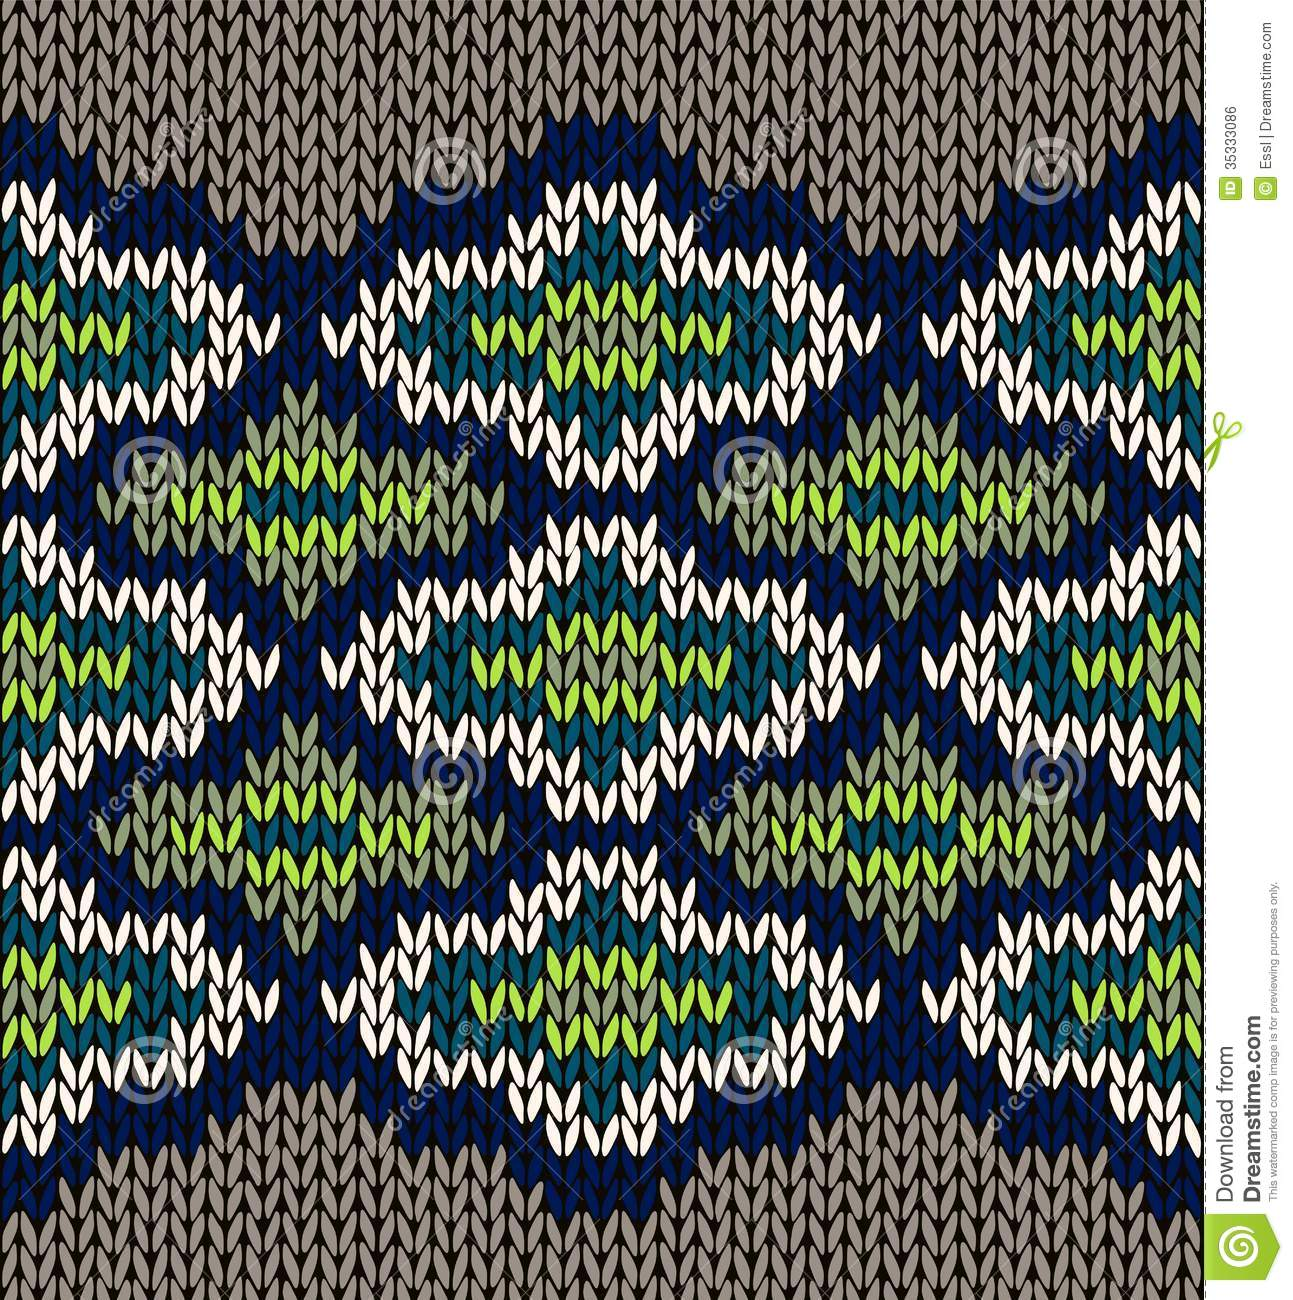 Jacquard Knitting Patterns : Knit Seamless Jacquard Ornament Texture Royalty Free Stock Image - Image: 353...